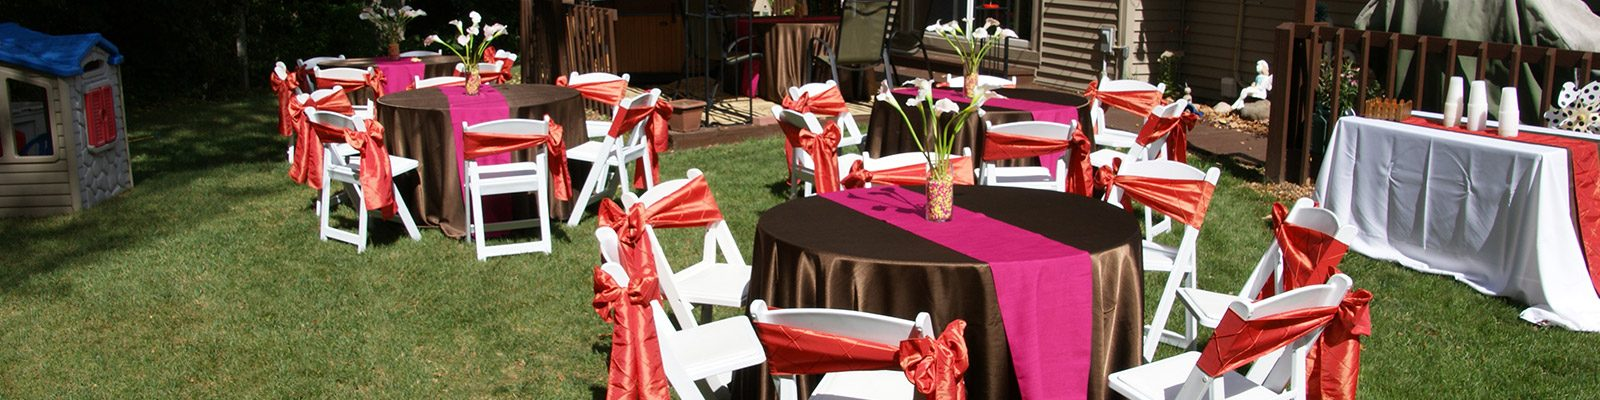 Backyard Rentals For Weddings 4 things you need to know about backyard wedding rentals | arena